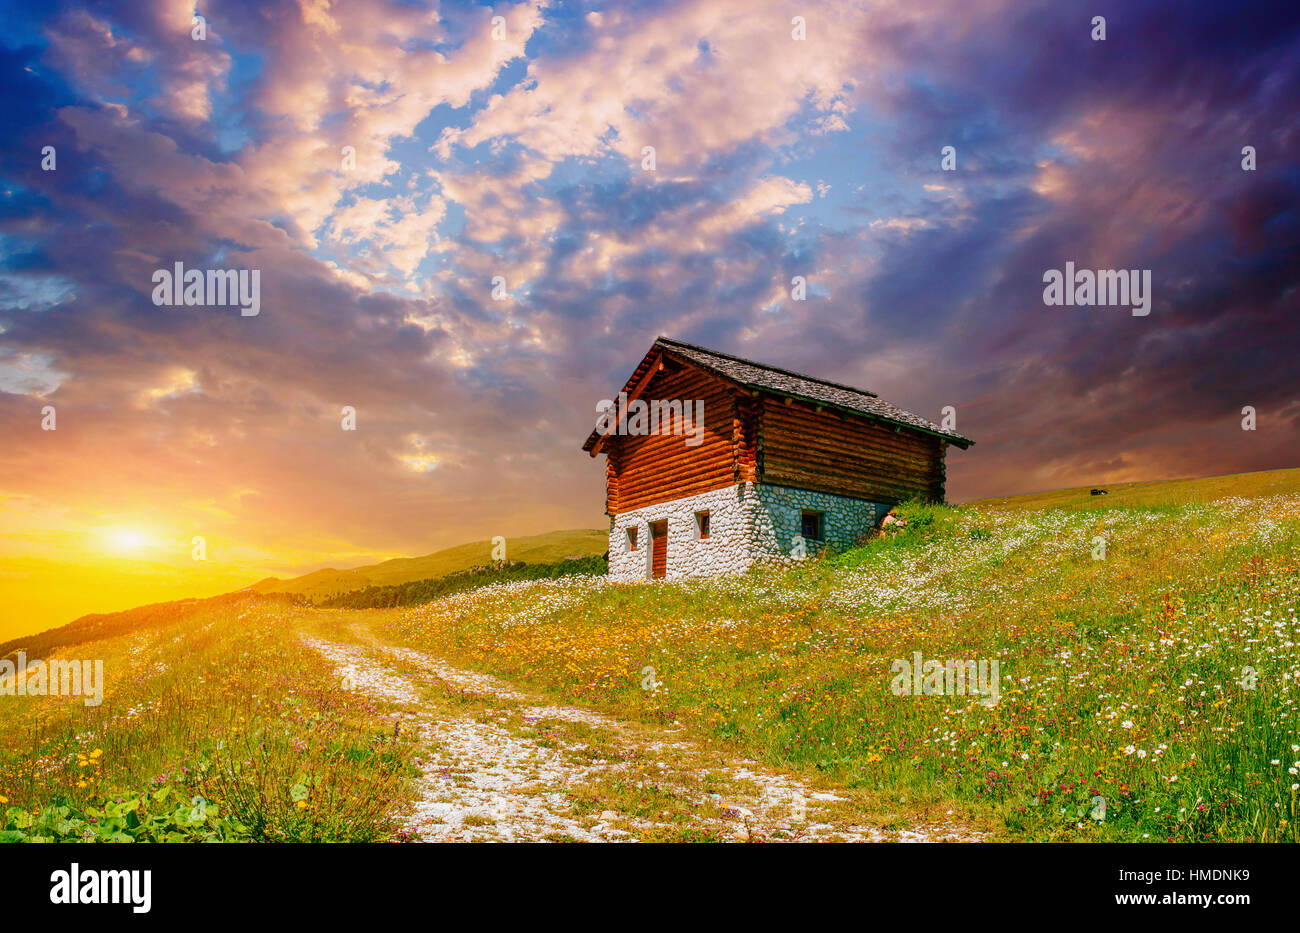 House in the mountains at sunset - Stock Image